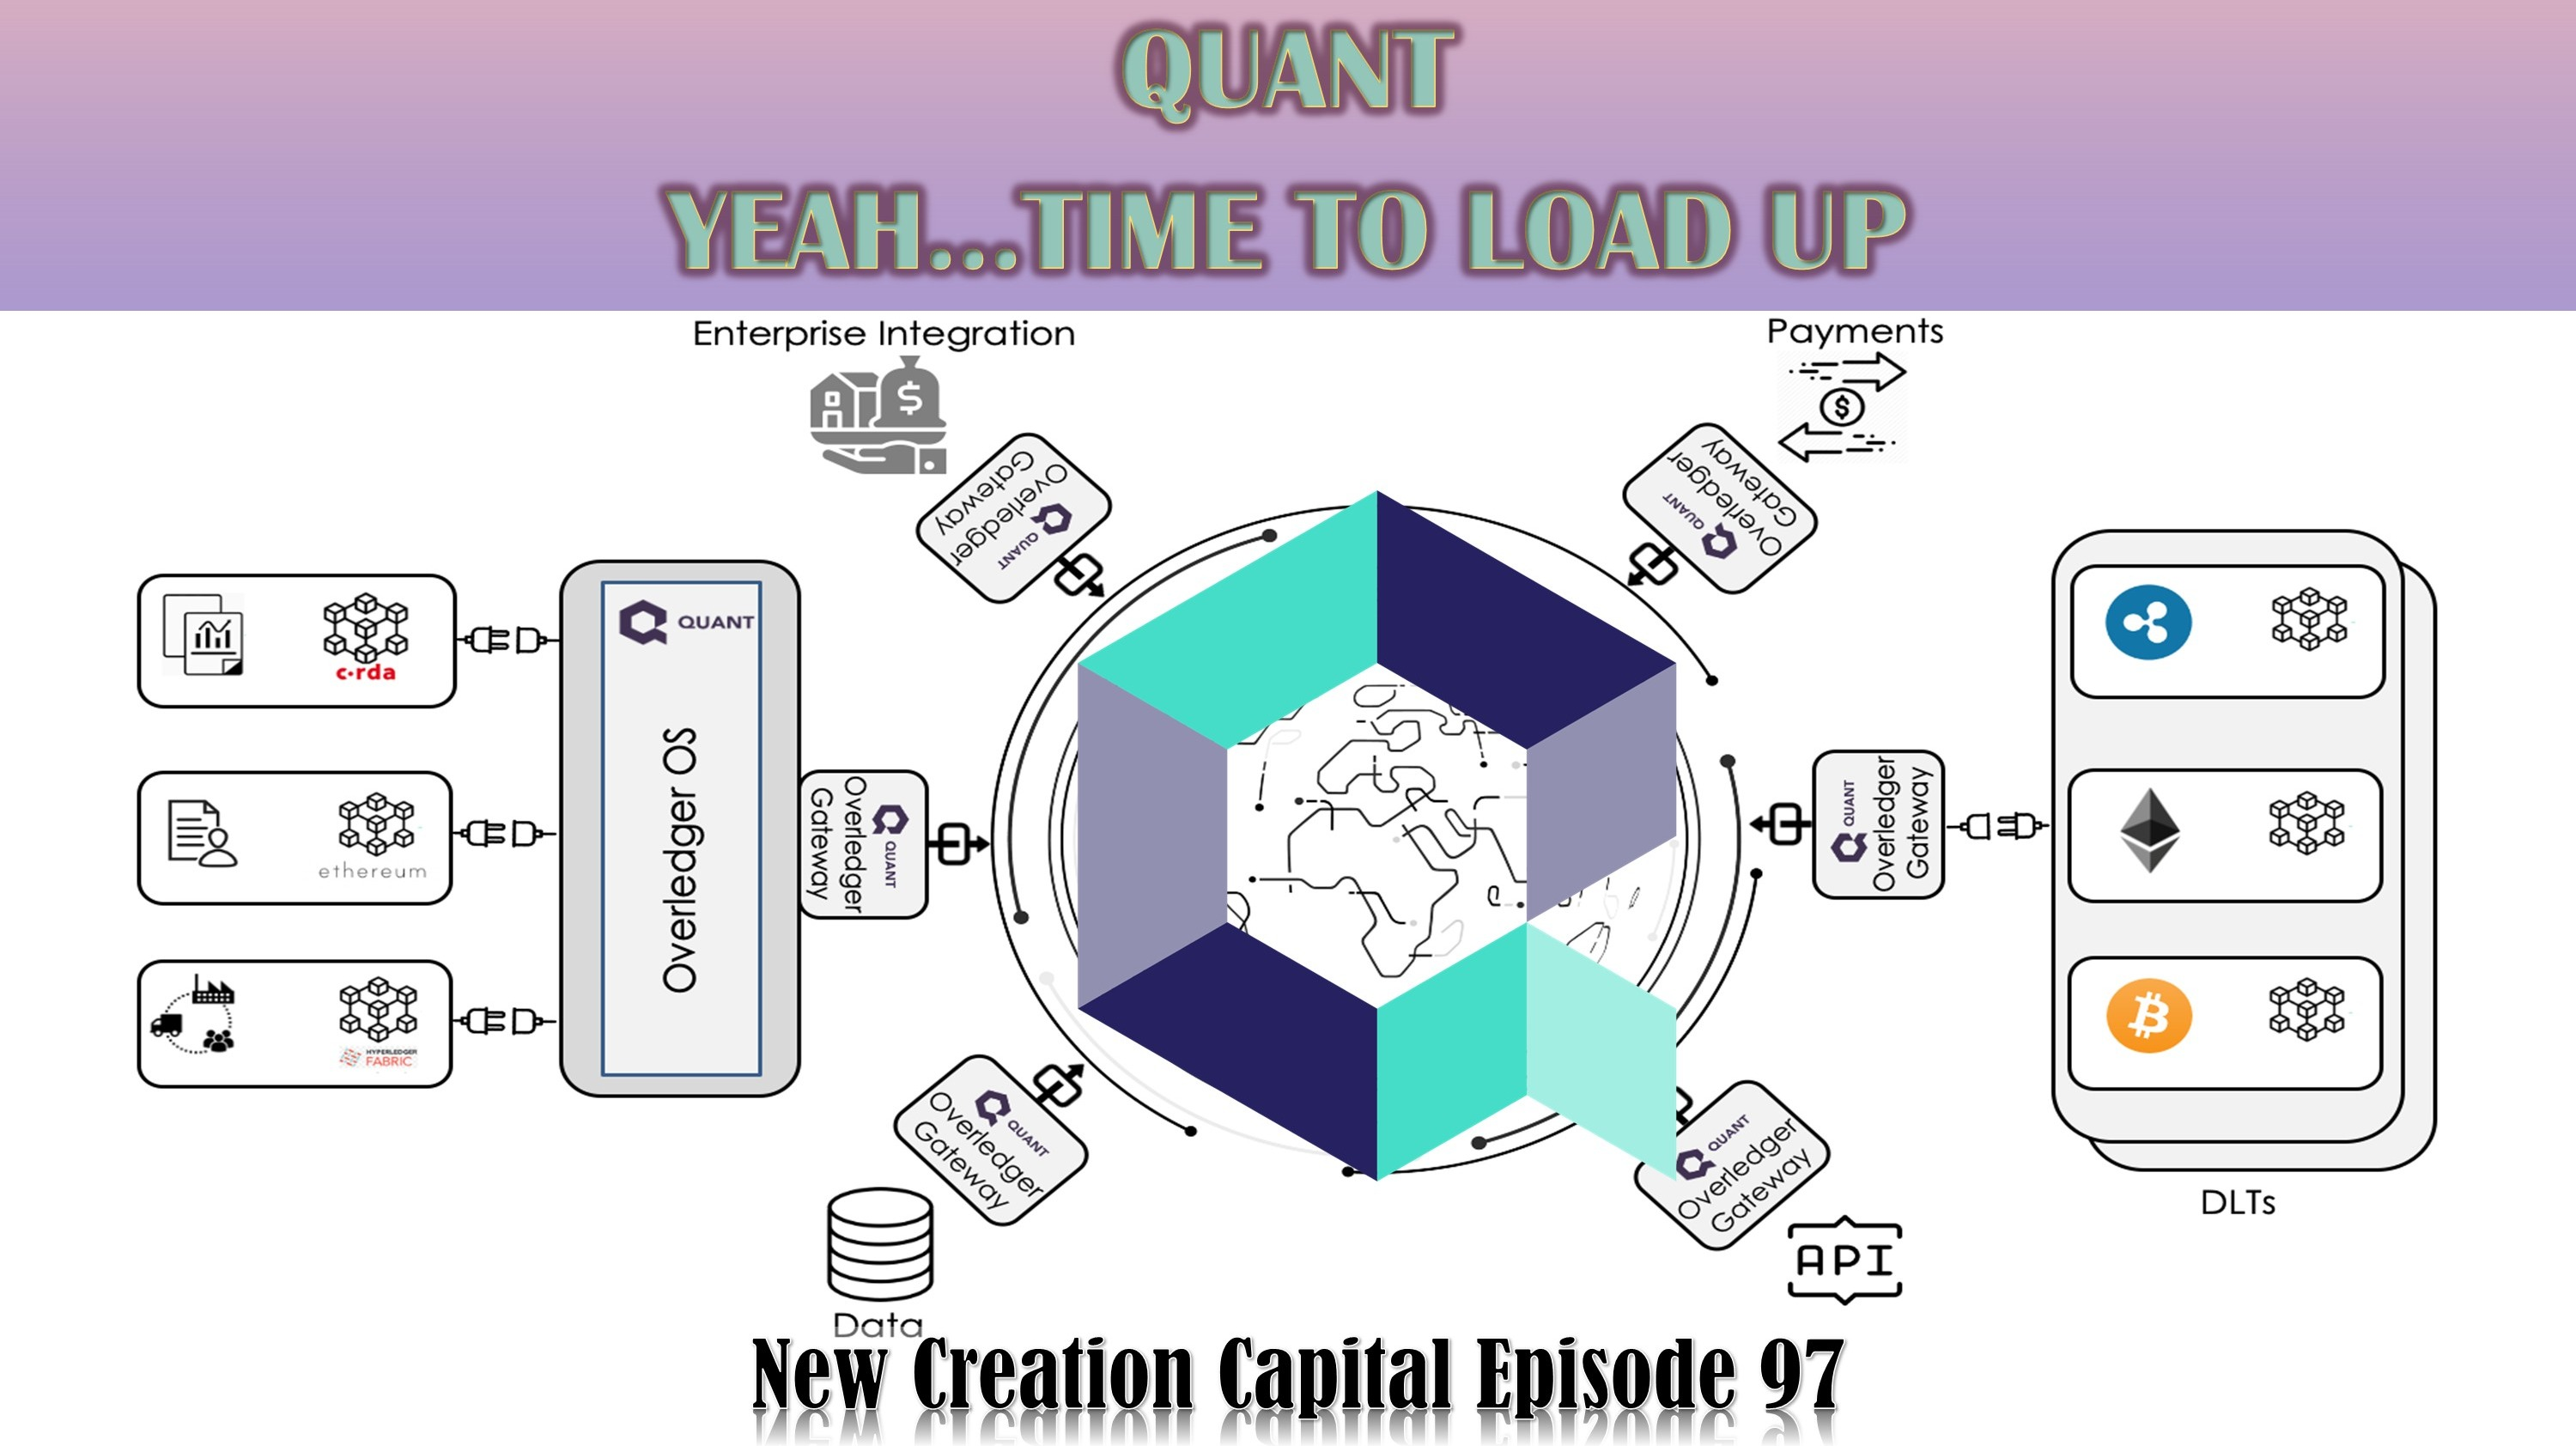 Episode 97: Quant! Overledger! Yeah. Its Time to Load Up! XRP, Bitcoin, ETH, XLM